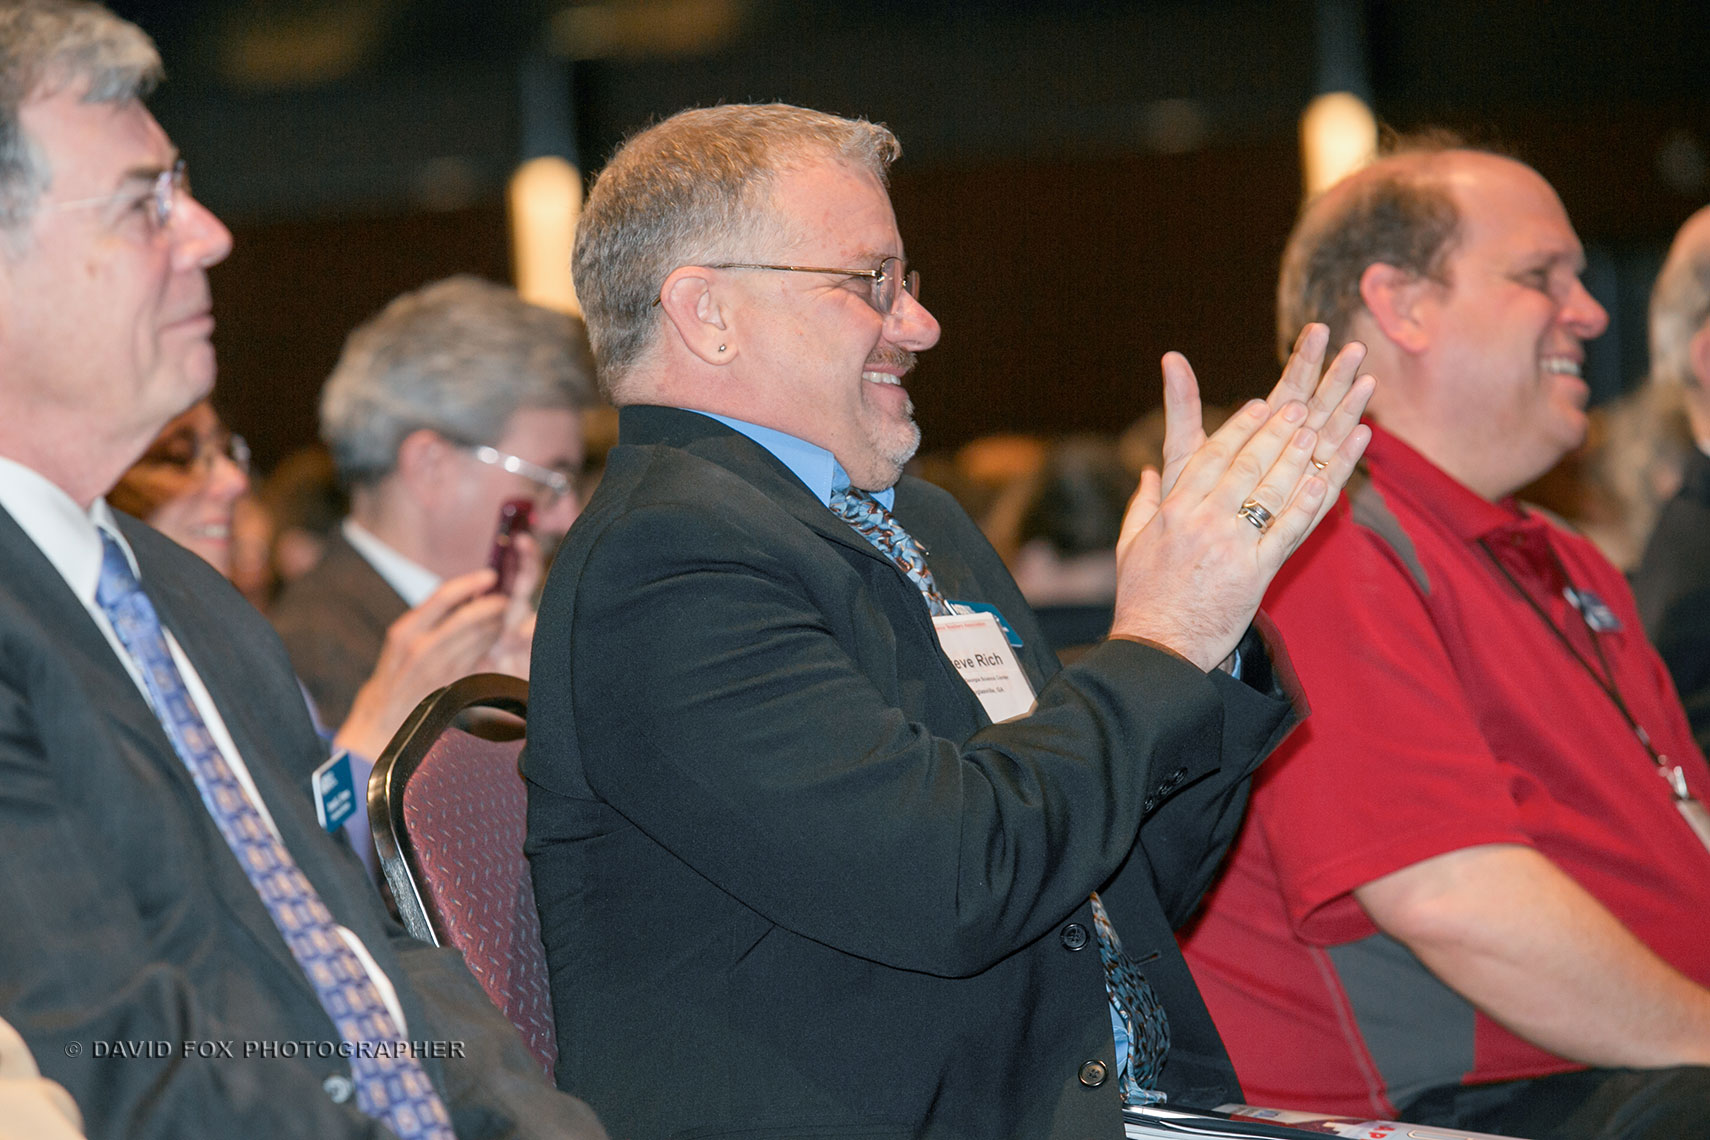 Conference Attendees Applaud Speaker at NSTA Conference